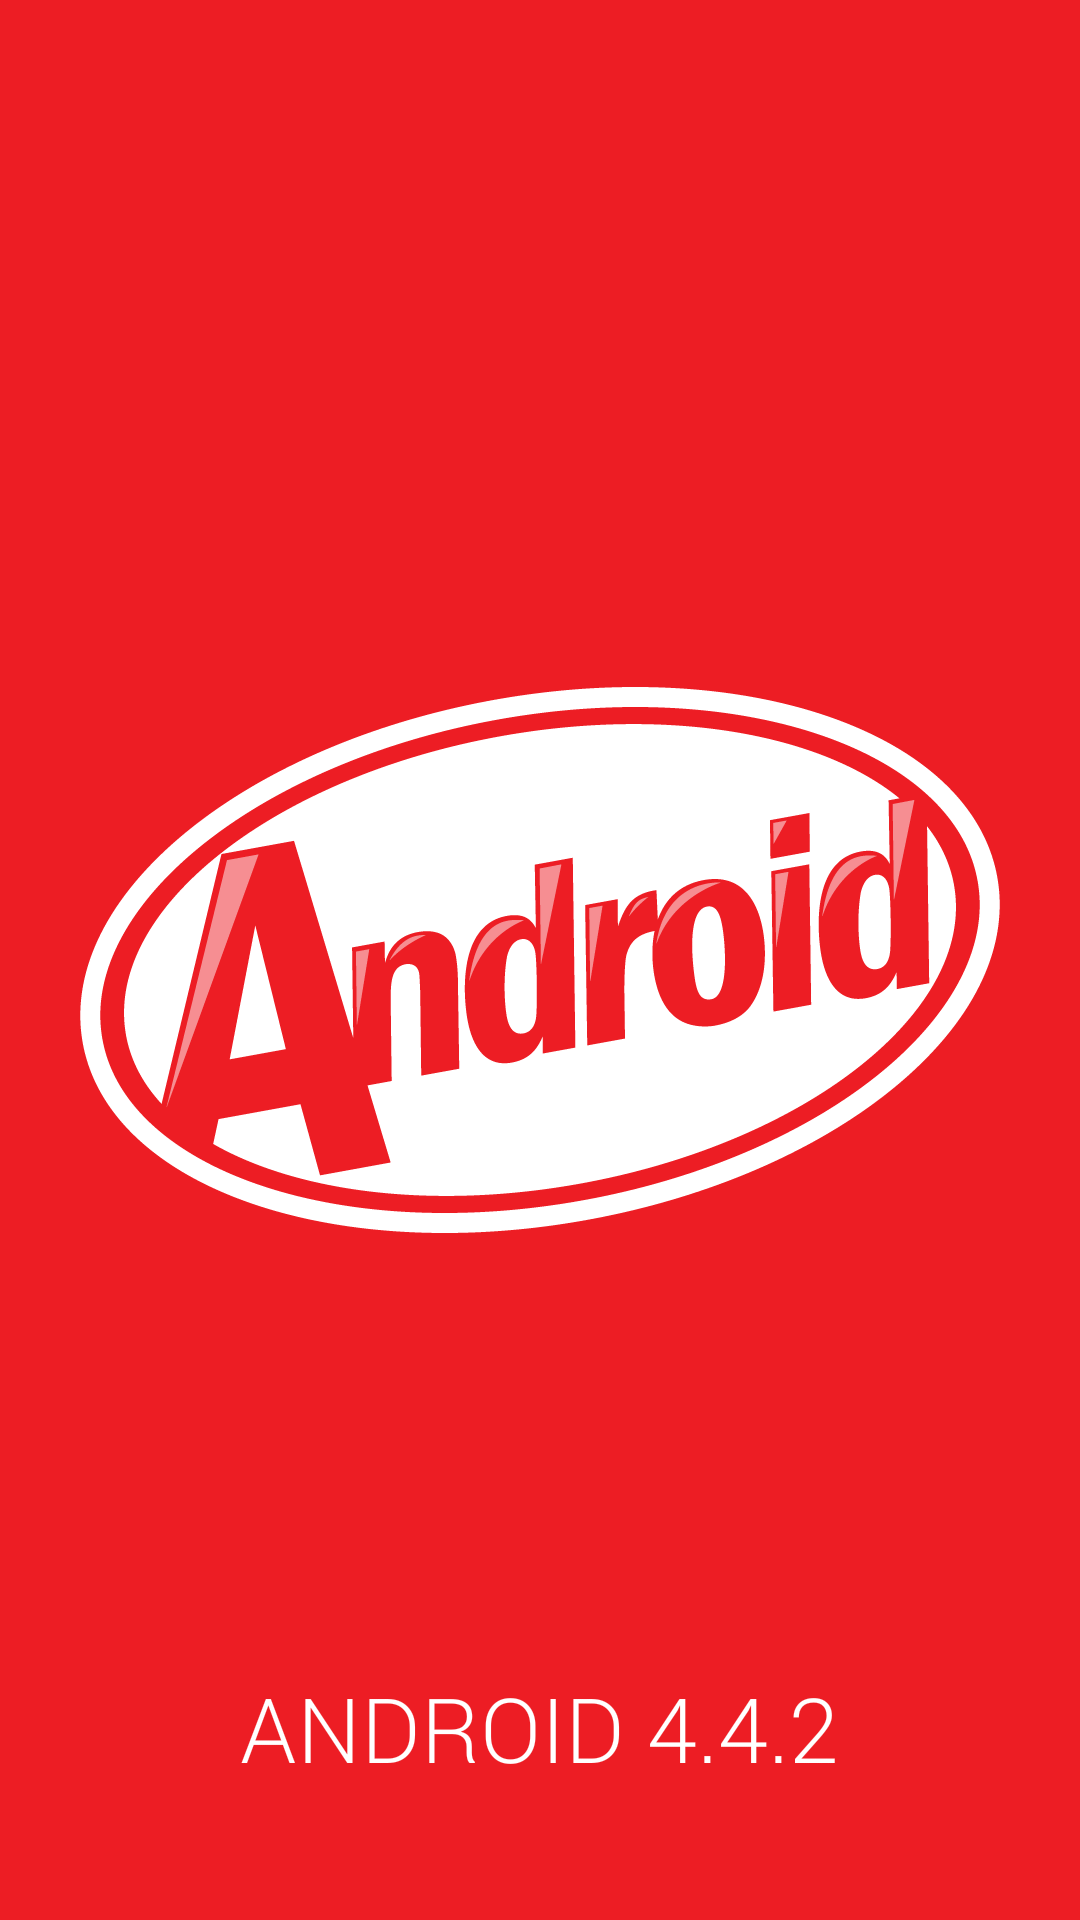 Samsung Rolls Out Android 4.4.2 KitKat Update to Galaxy Note 3 (SM-N900)